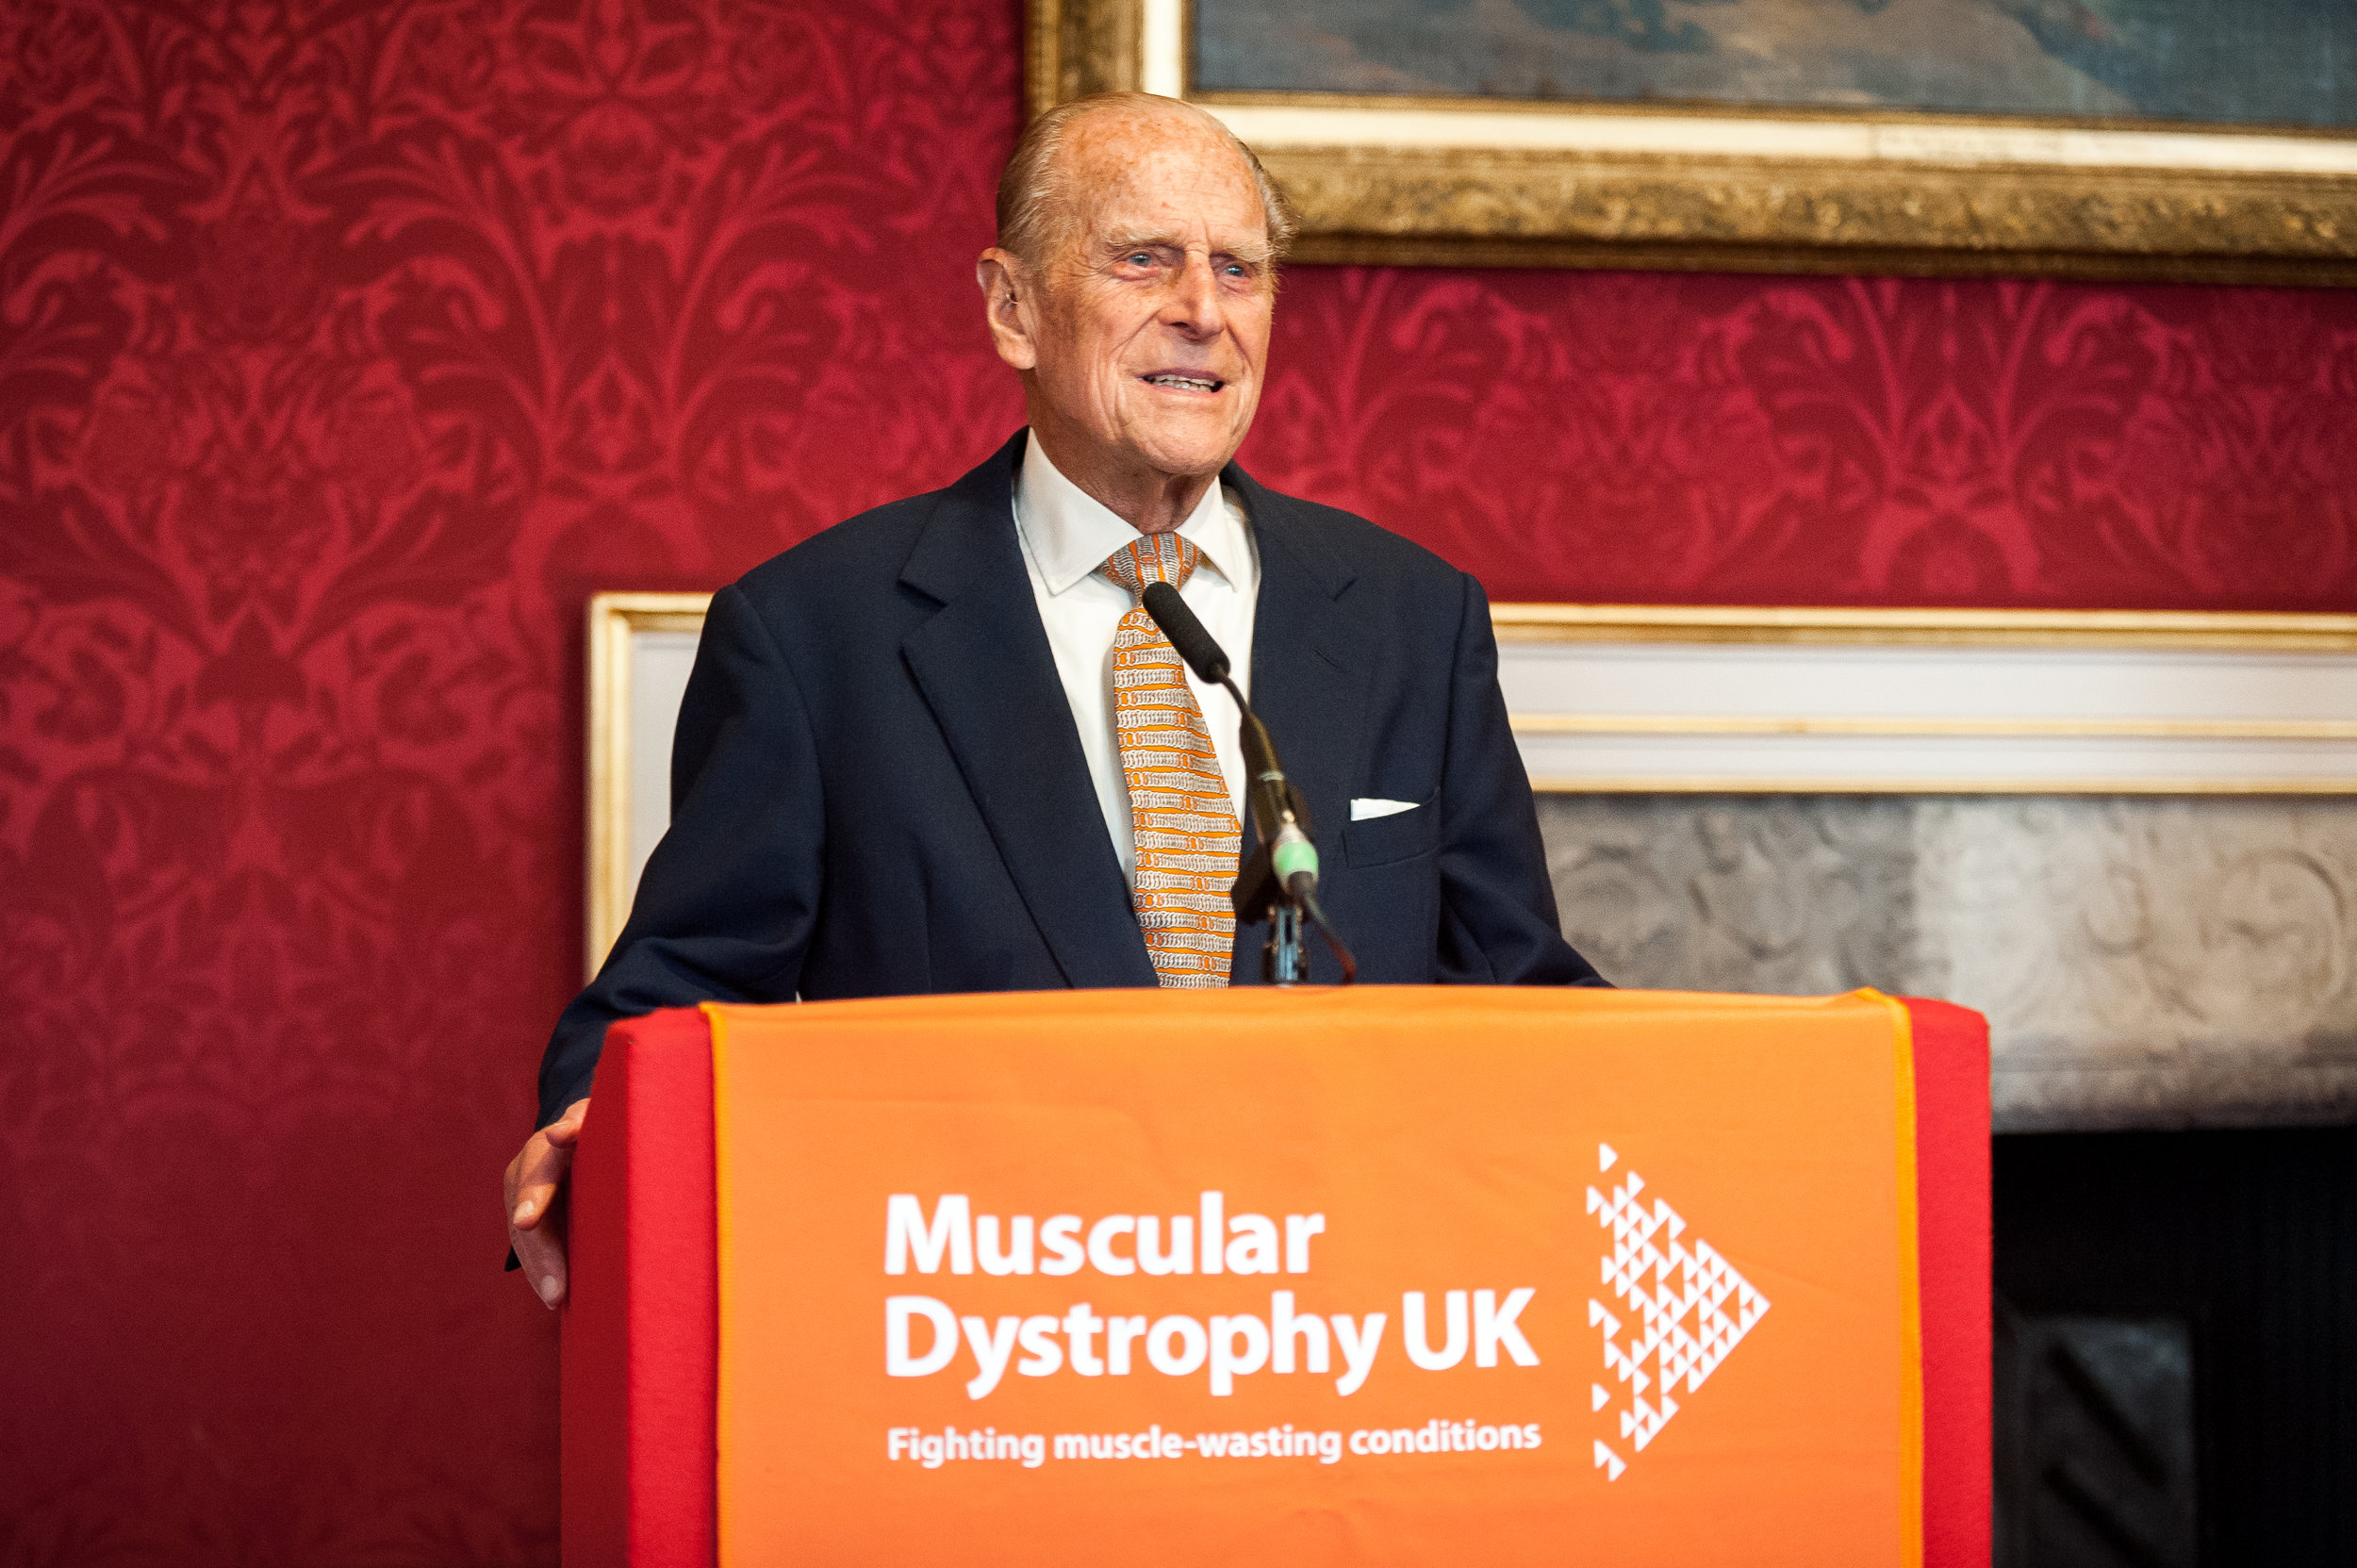 The Duke of Edinburgh addresses attendees at a special event at St. Jame's palace for those affected by a form of muscular dystrophy.